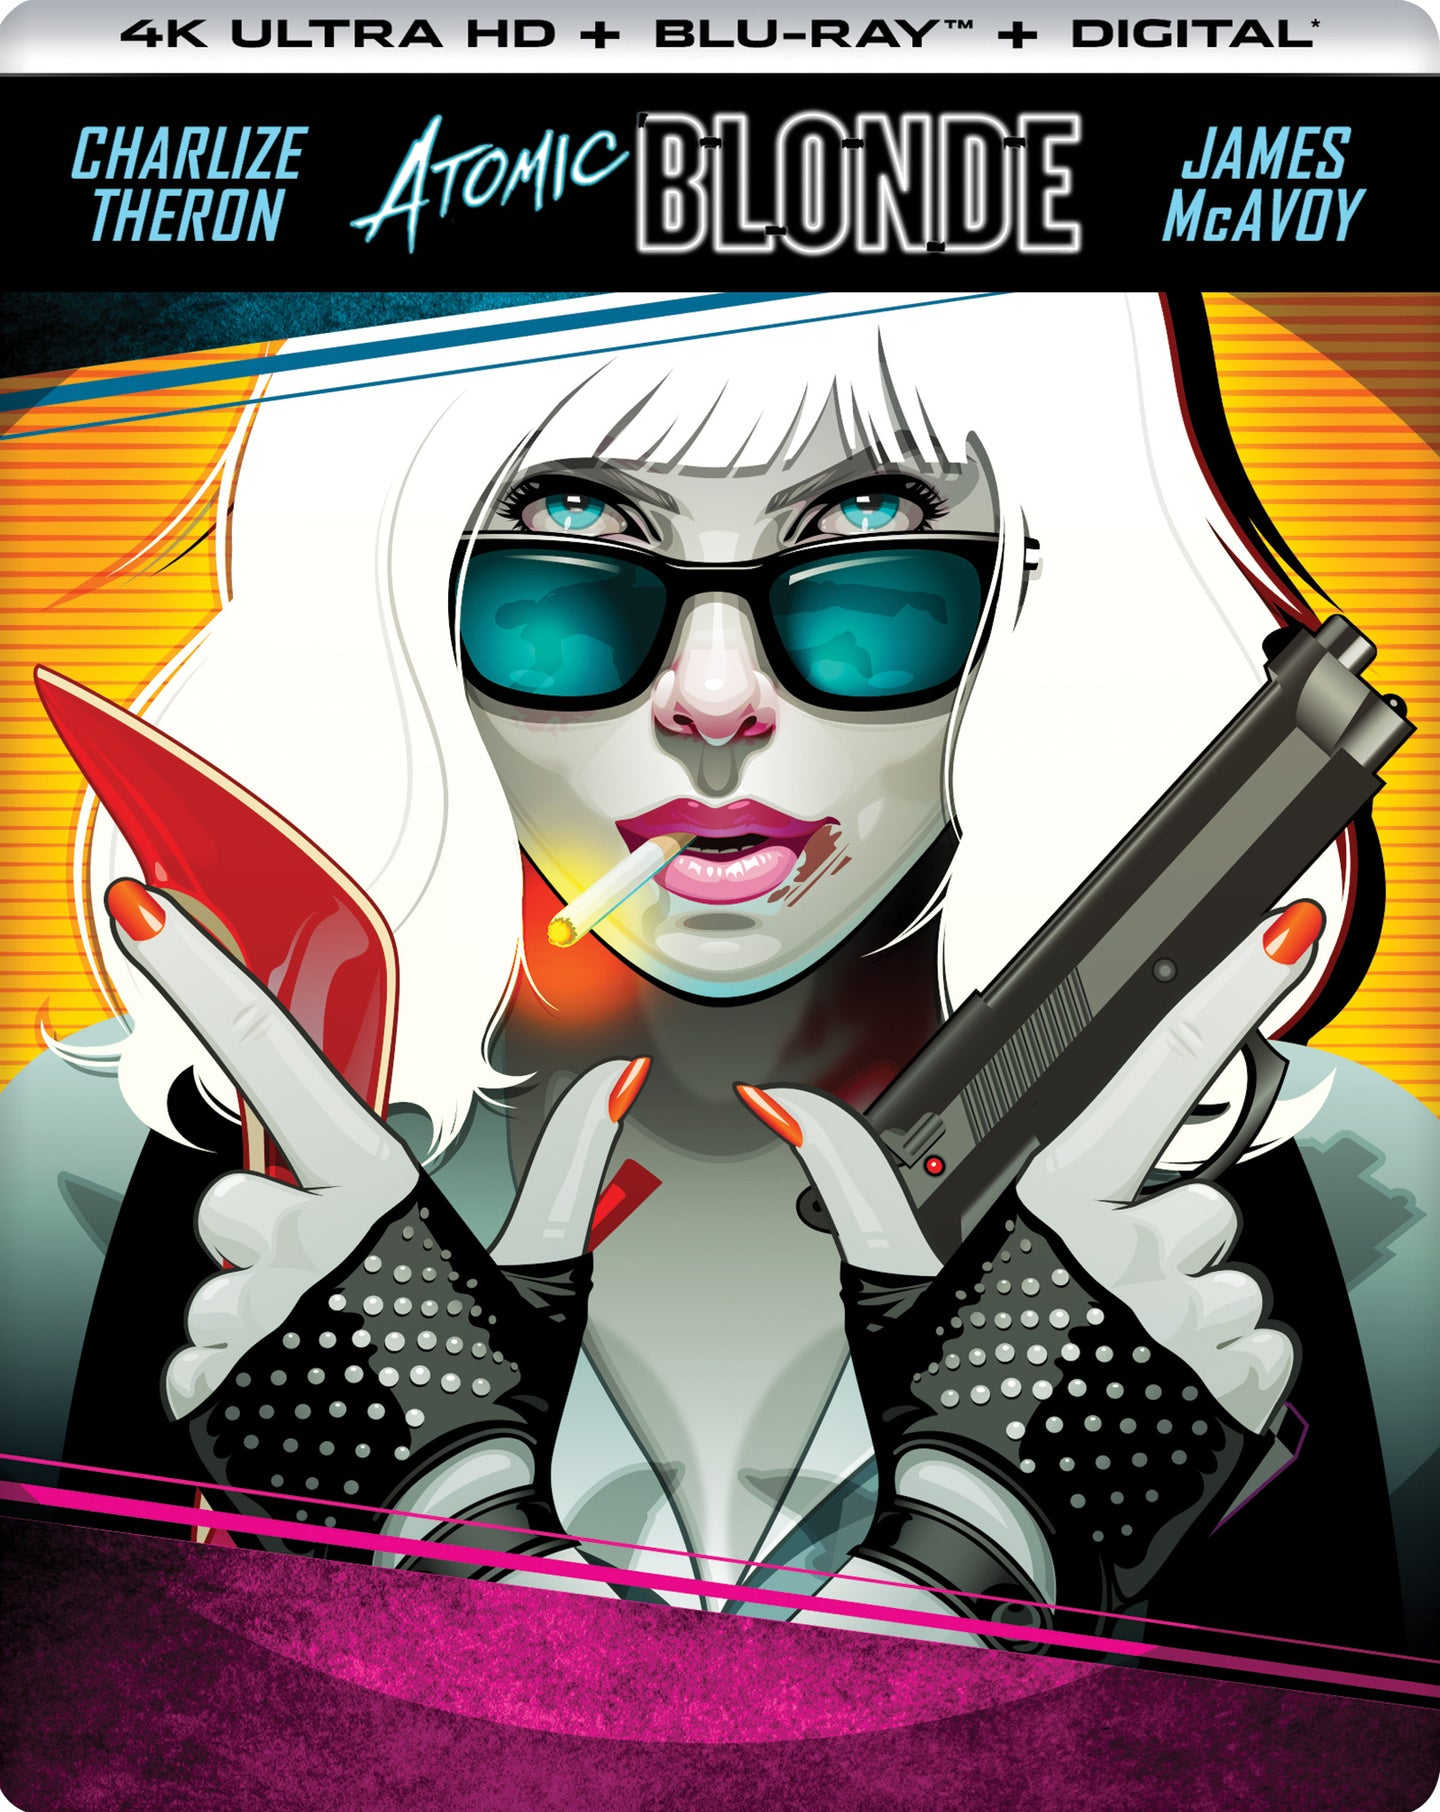 Atomic Blonde (2017) iTunes 4K redemption only